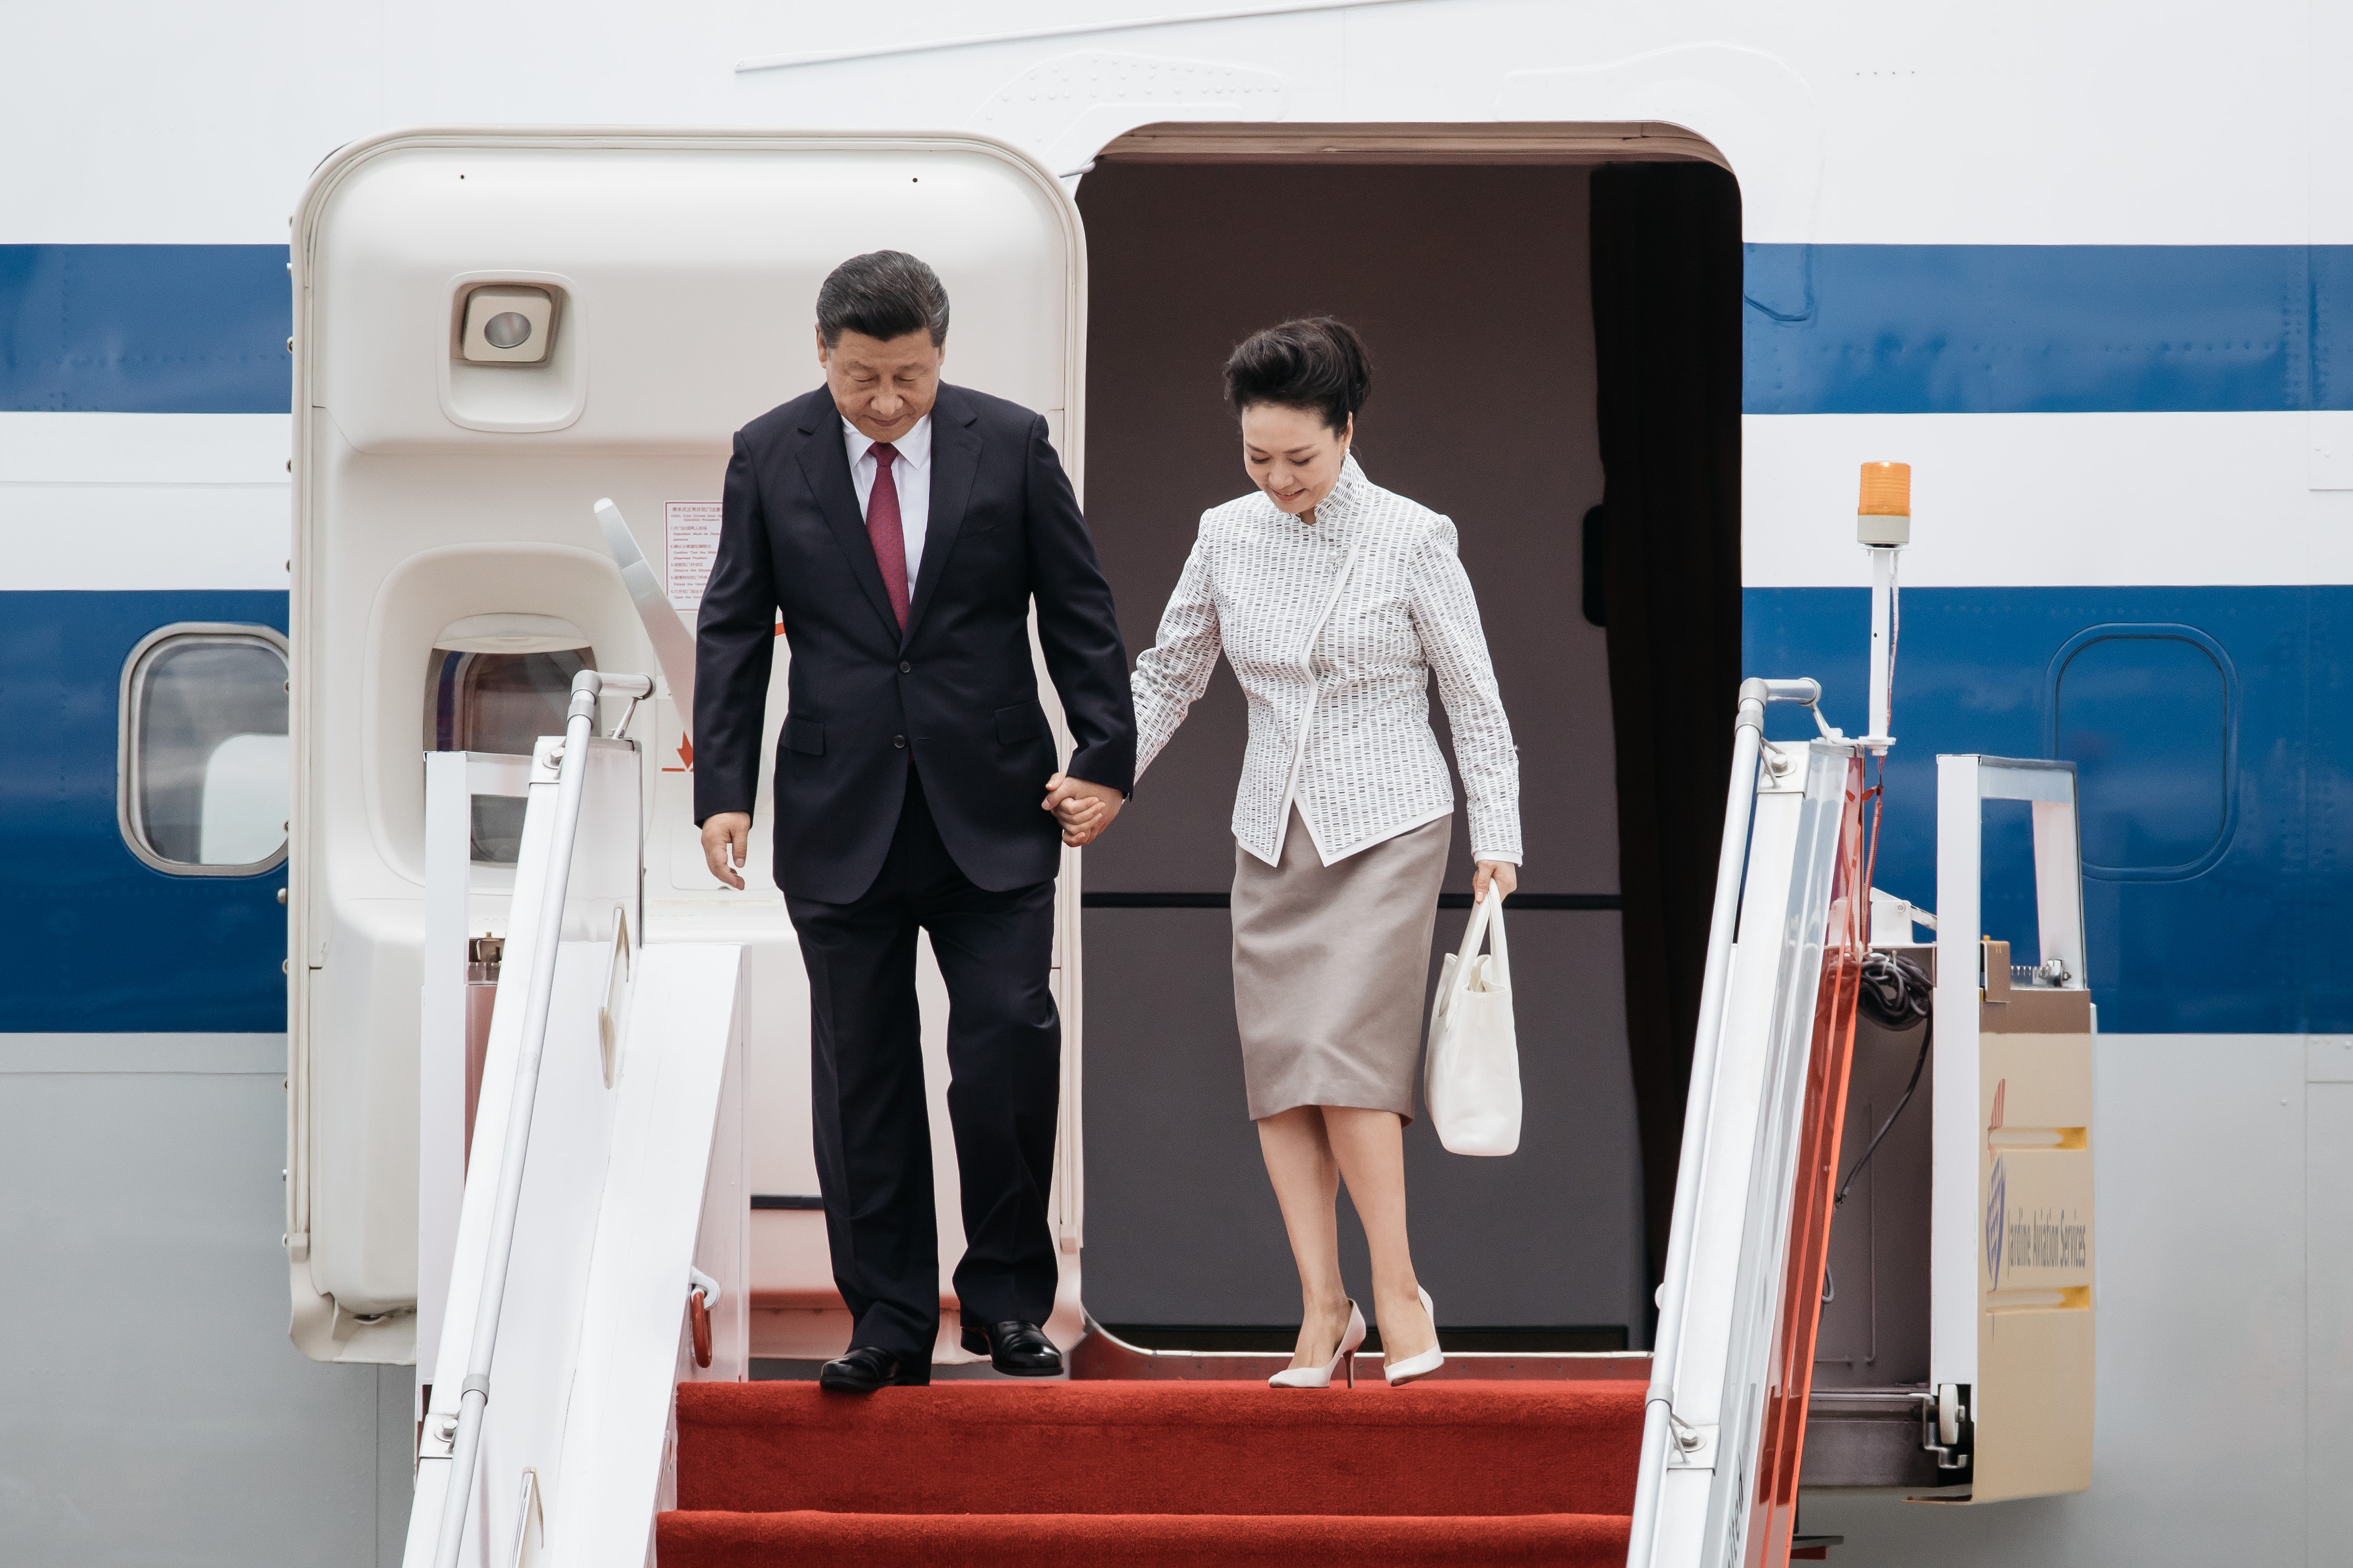 Xi Jinping, China's president, left, and Peng Liyuan, China's first lady, disembark from a plane at Hong Kong International Airport in Hong Kong, China, on Thursday, June 29, 2017. Xi arrived Thursday for his first visit to the financial hub since becoming China's top leader in 2012.